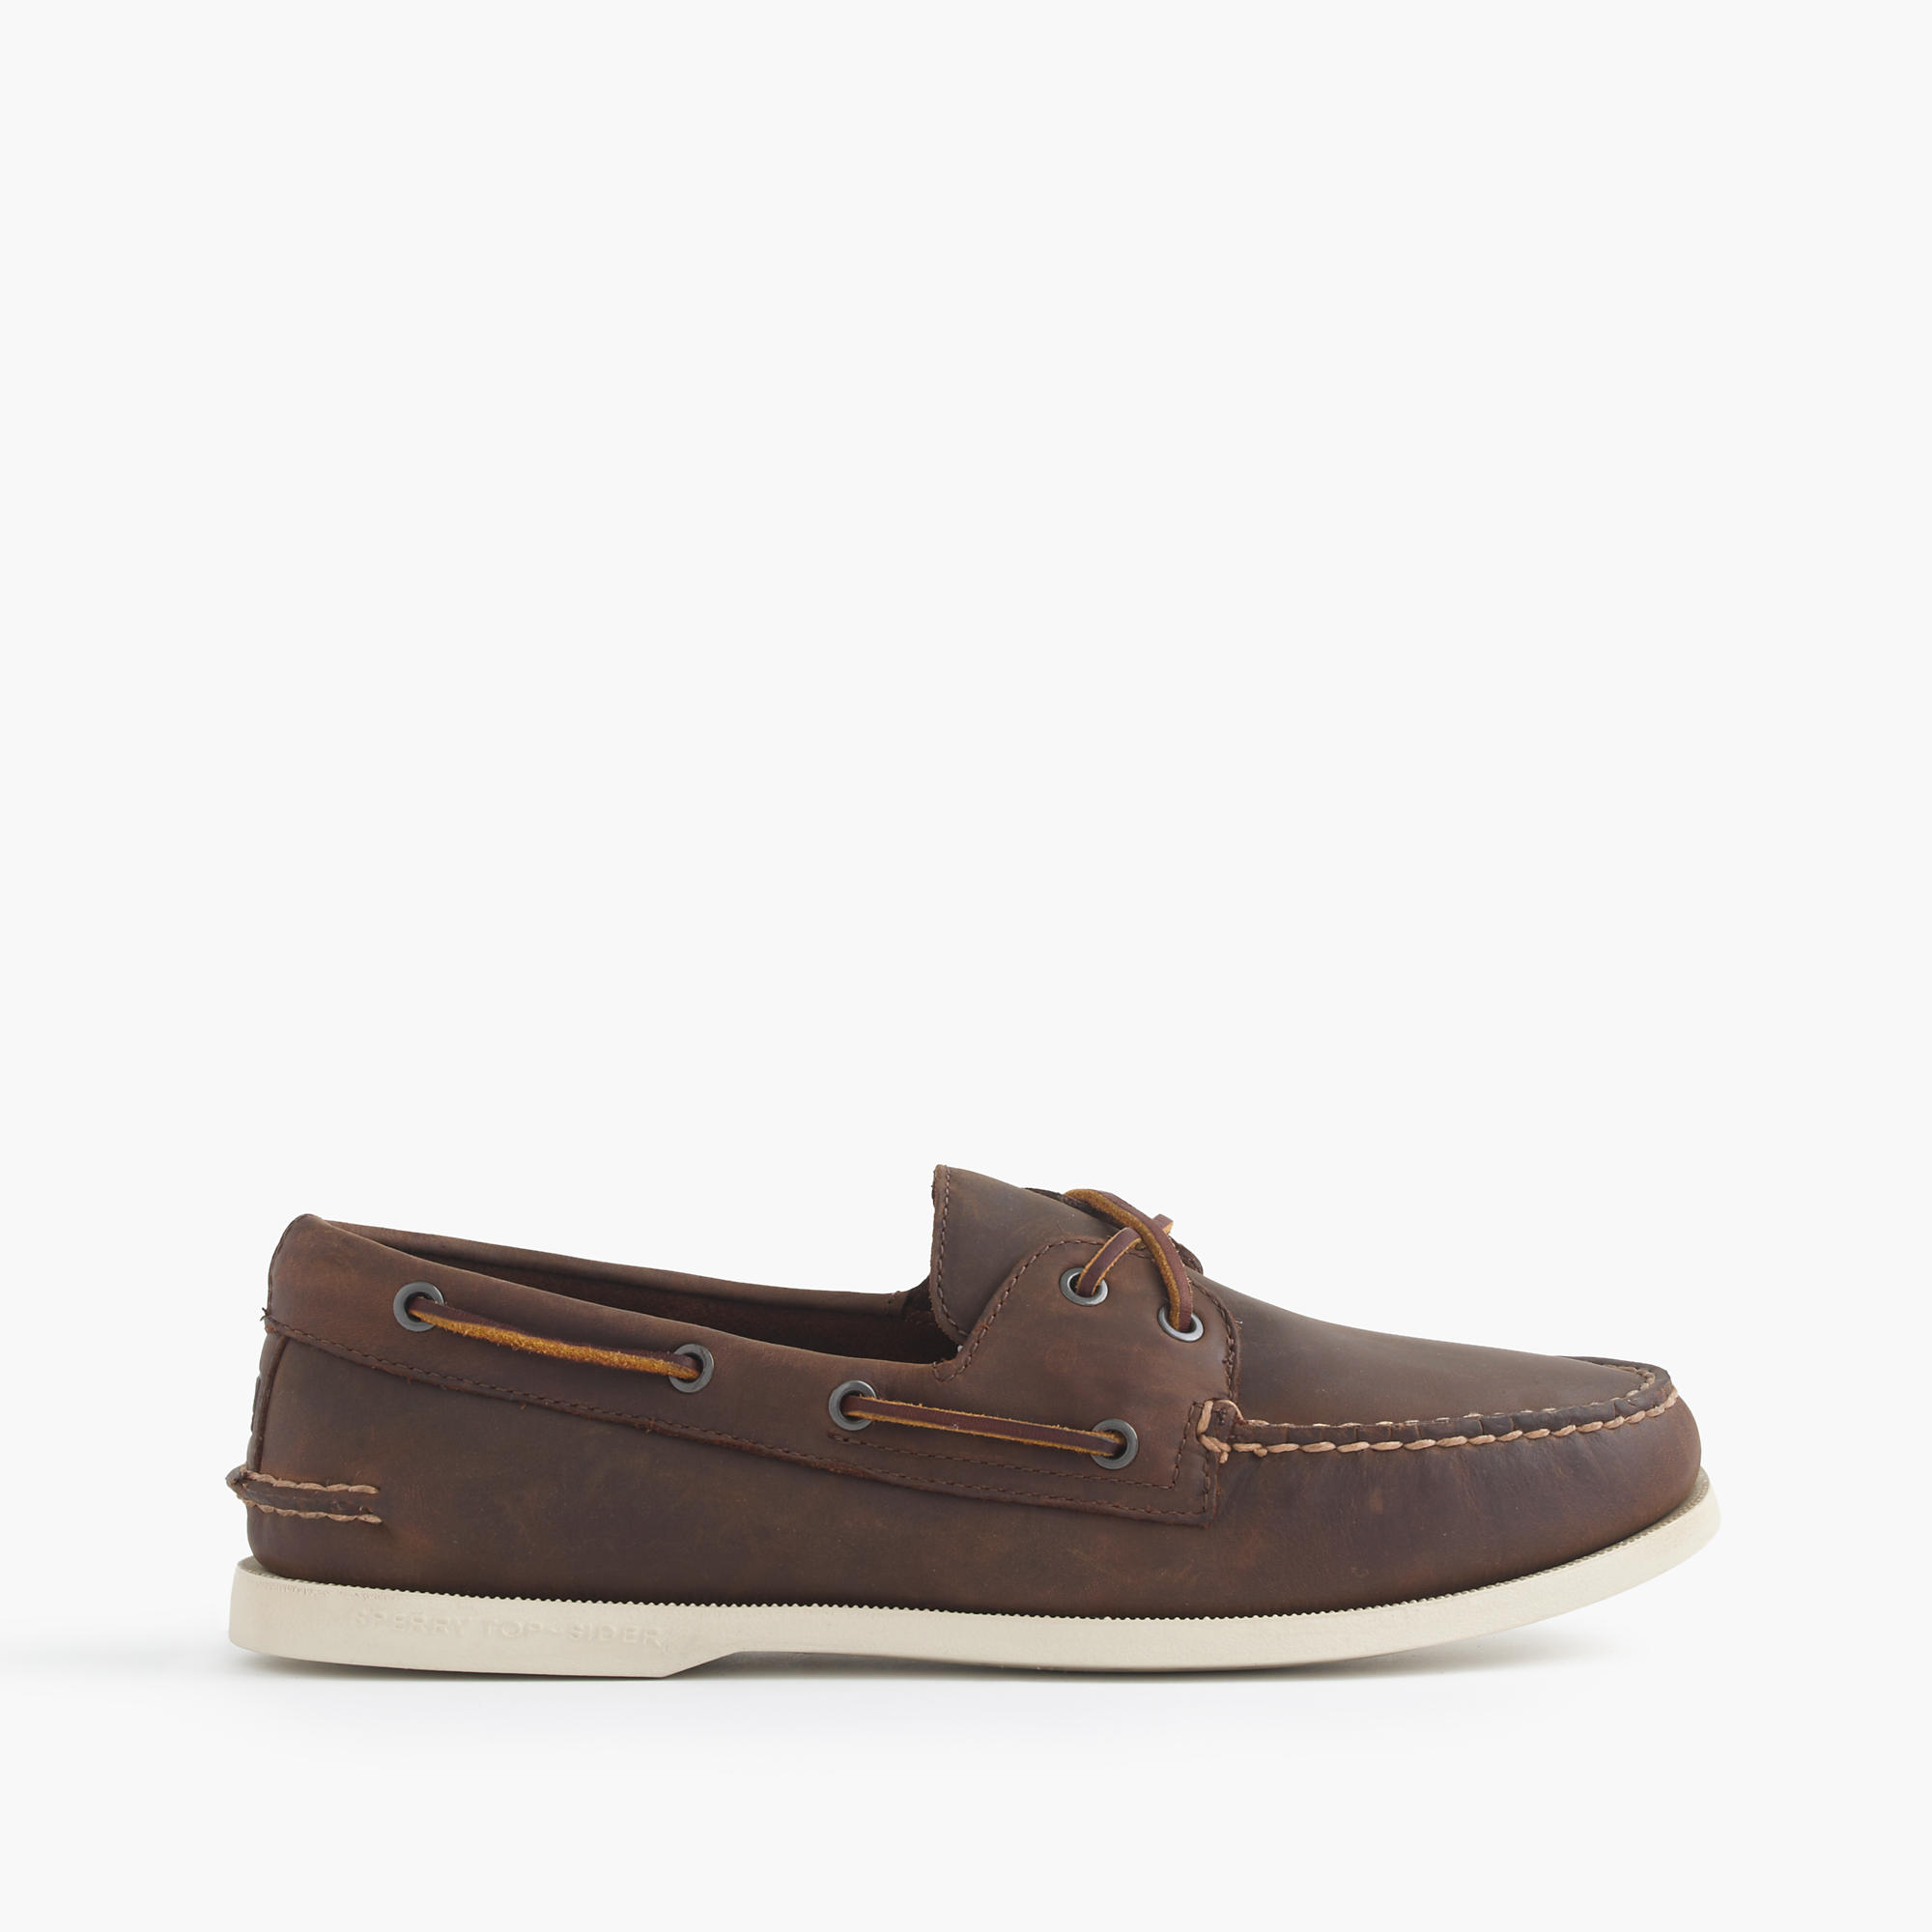 Sperry For J.Crew Authentic Original 2-Eye Broken-In Boat Shoes ...